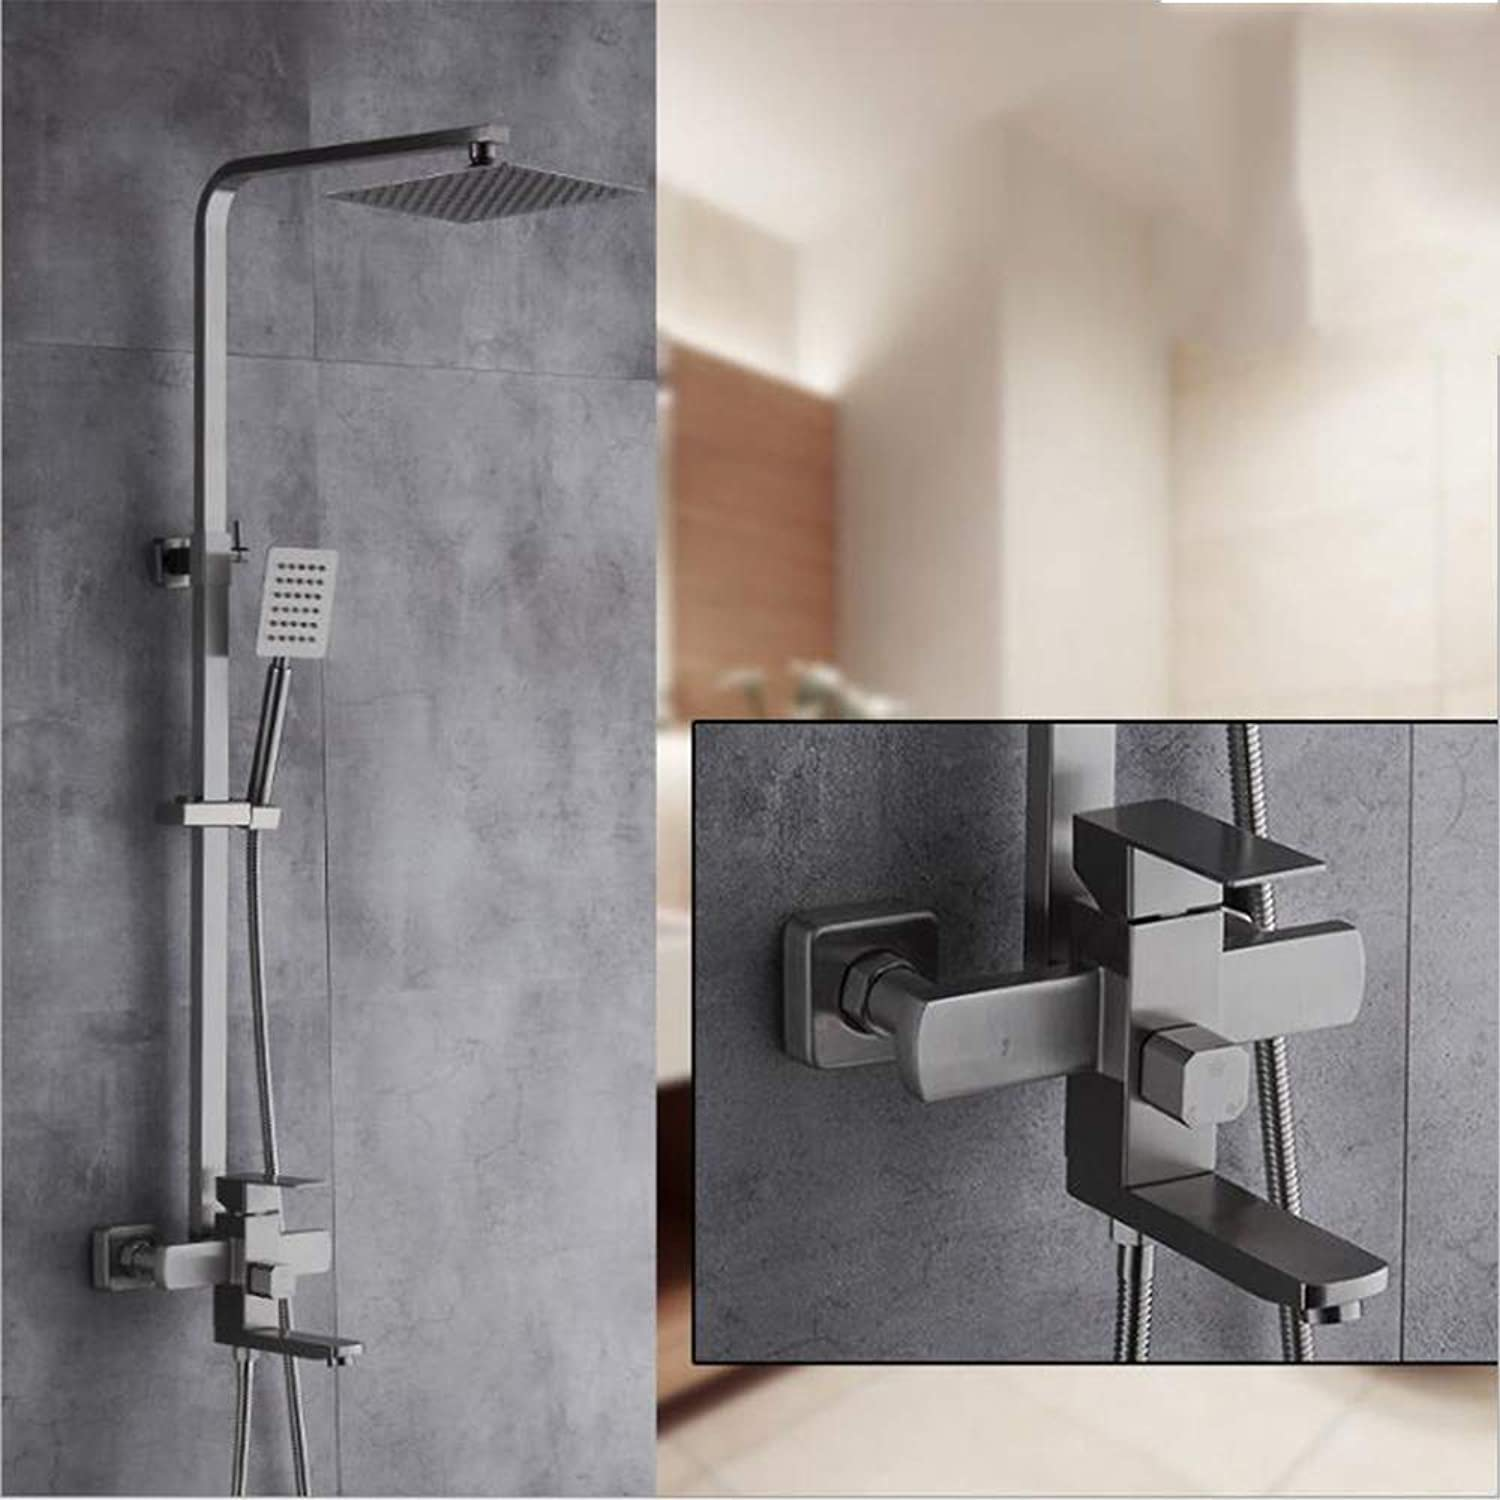 AA100 Thermostatic shower set stainless steel shower mixing valve ABS water-saving booster nozzle